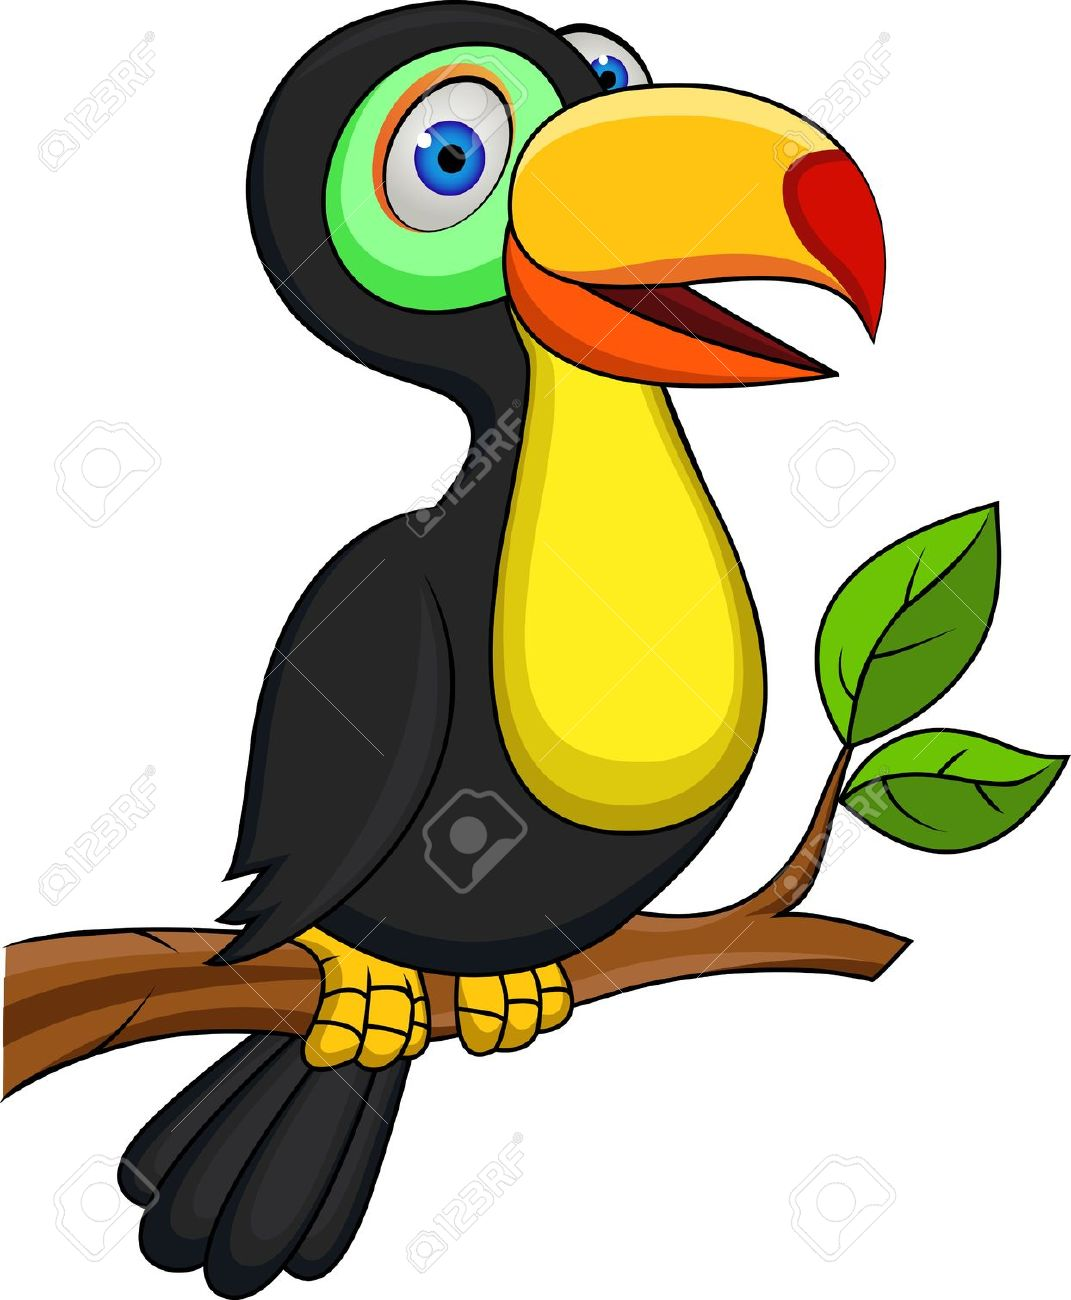 Toucan animal clipart - ClipartFest